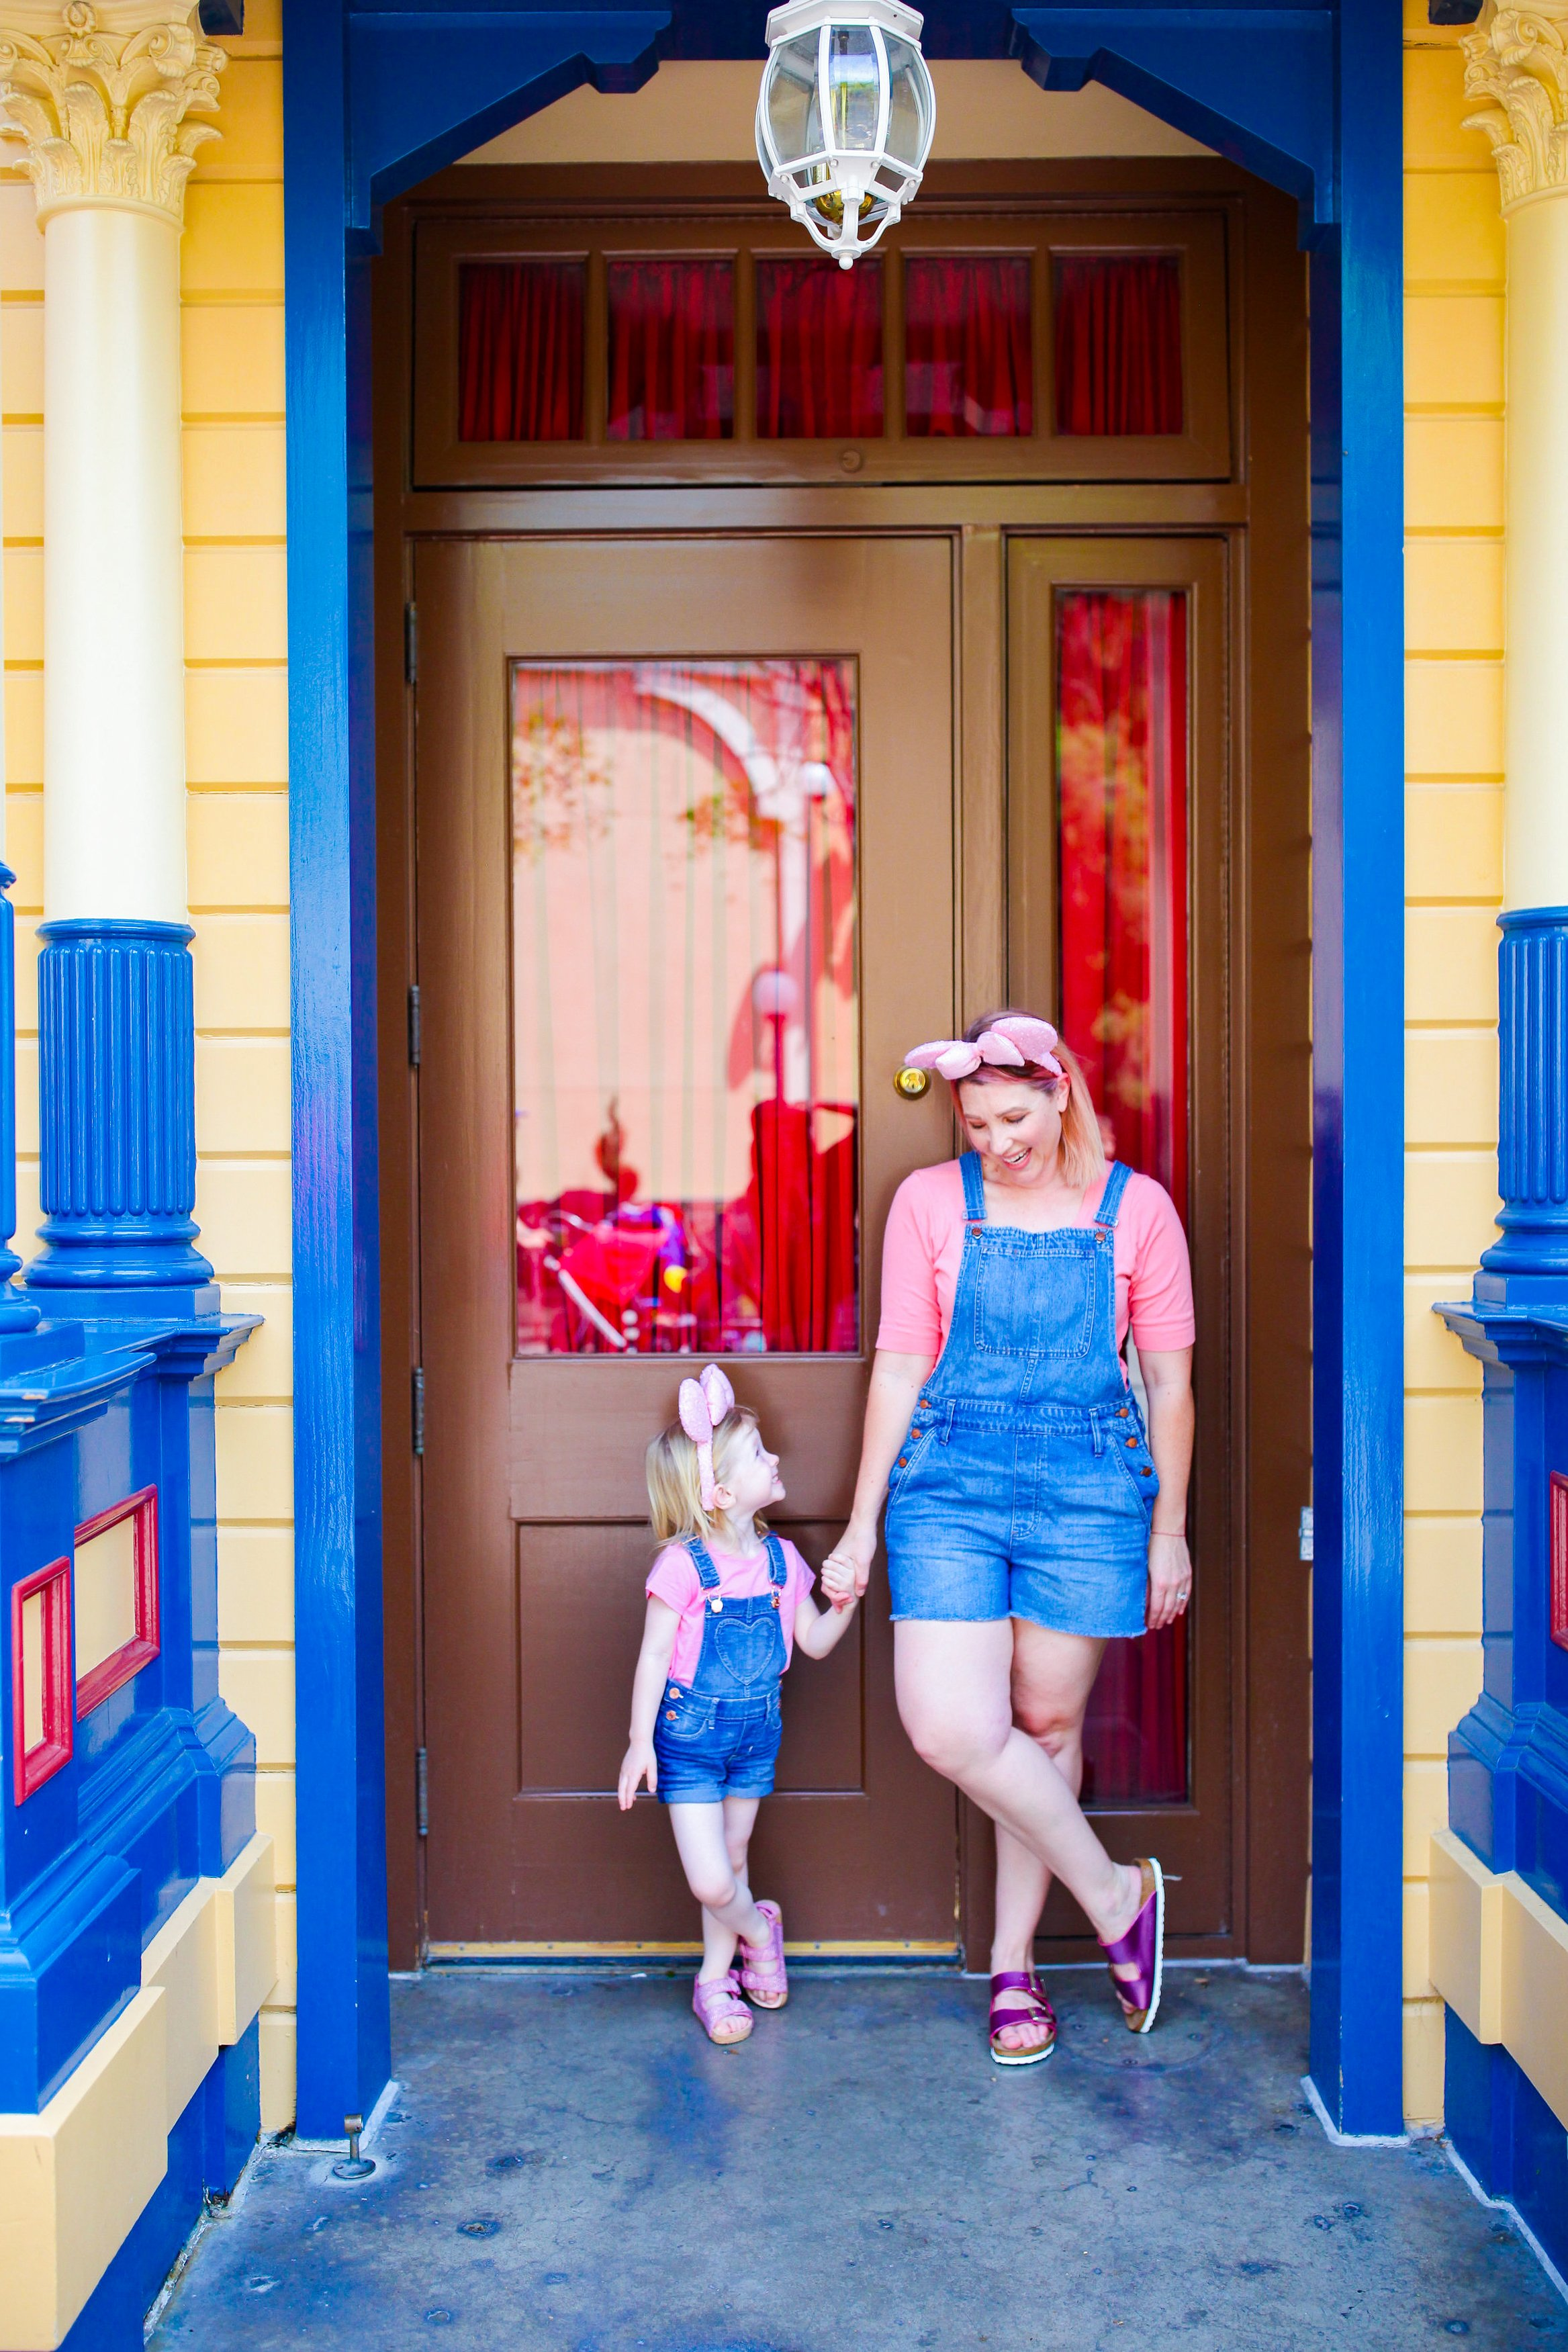 Disneyland Outfits: I love those short overalls and pops of pink!